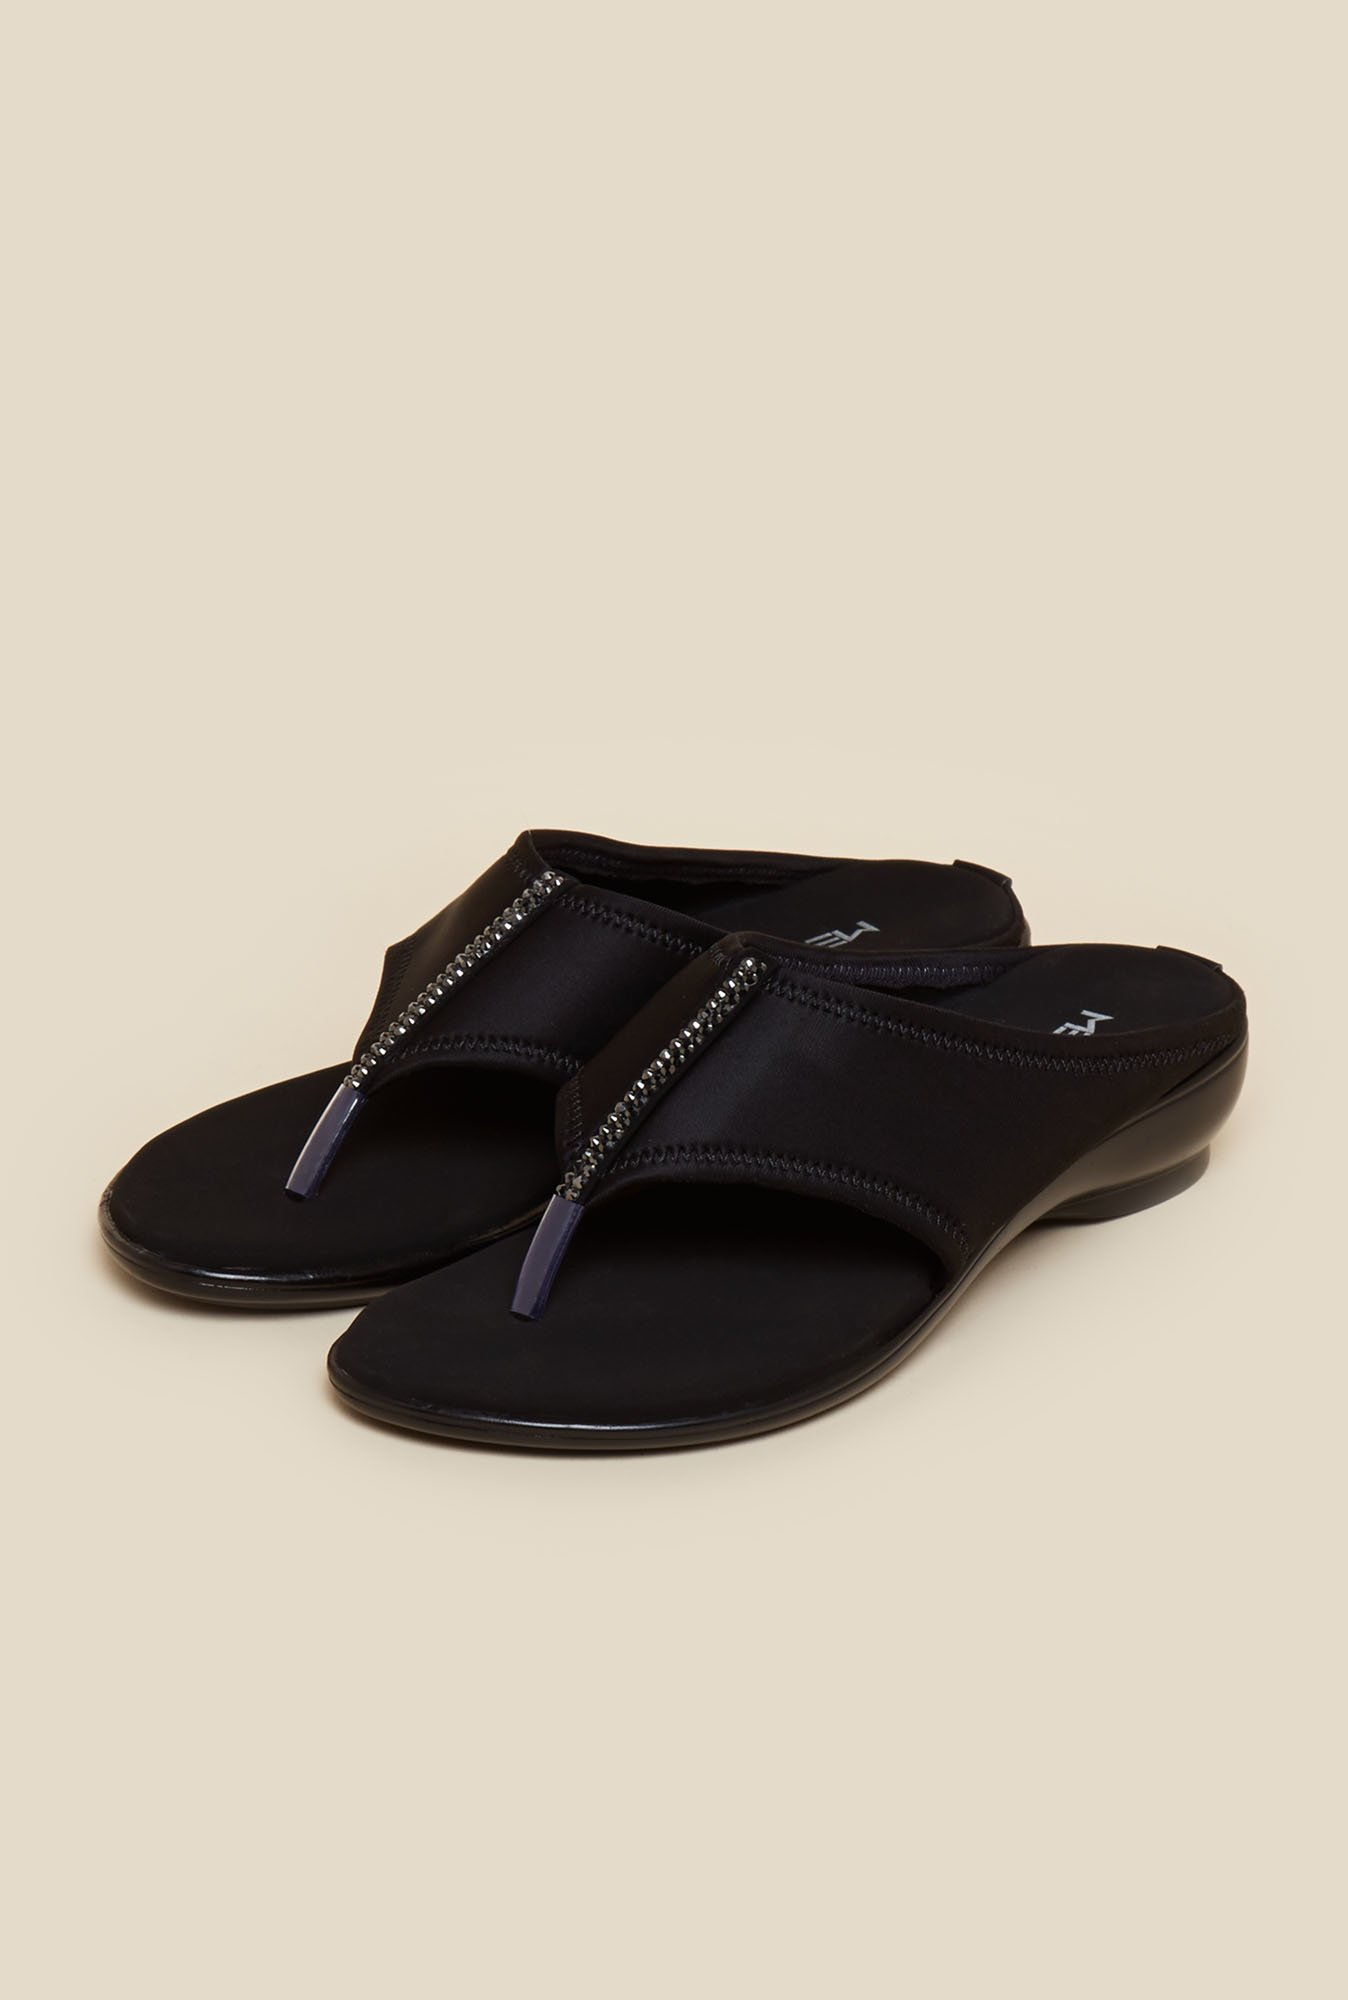 Metro Black Slip-On Sandals